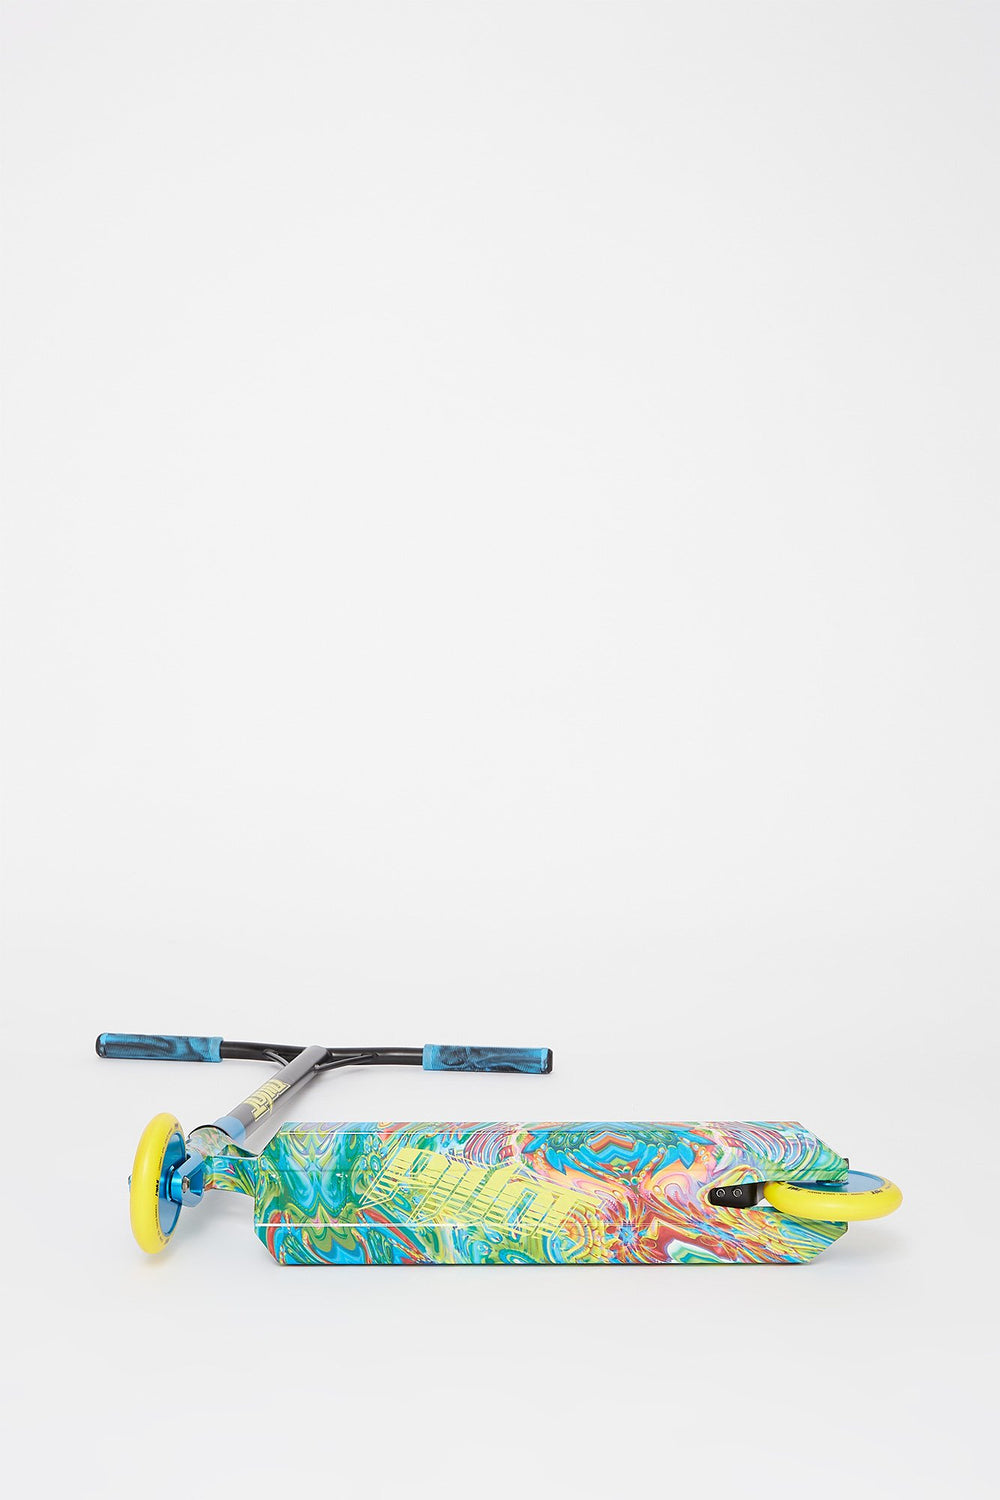 Pivot X-UP-S Kaleidescope Print Scooter Multi